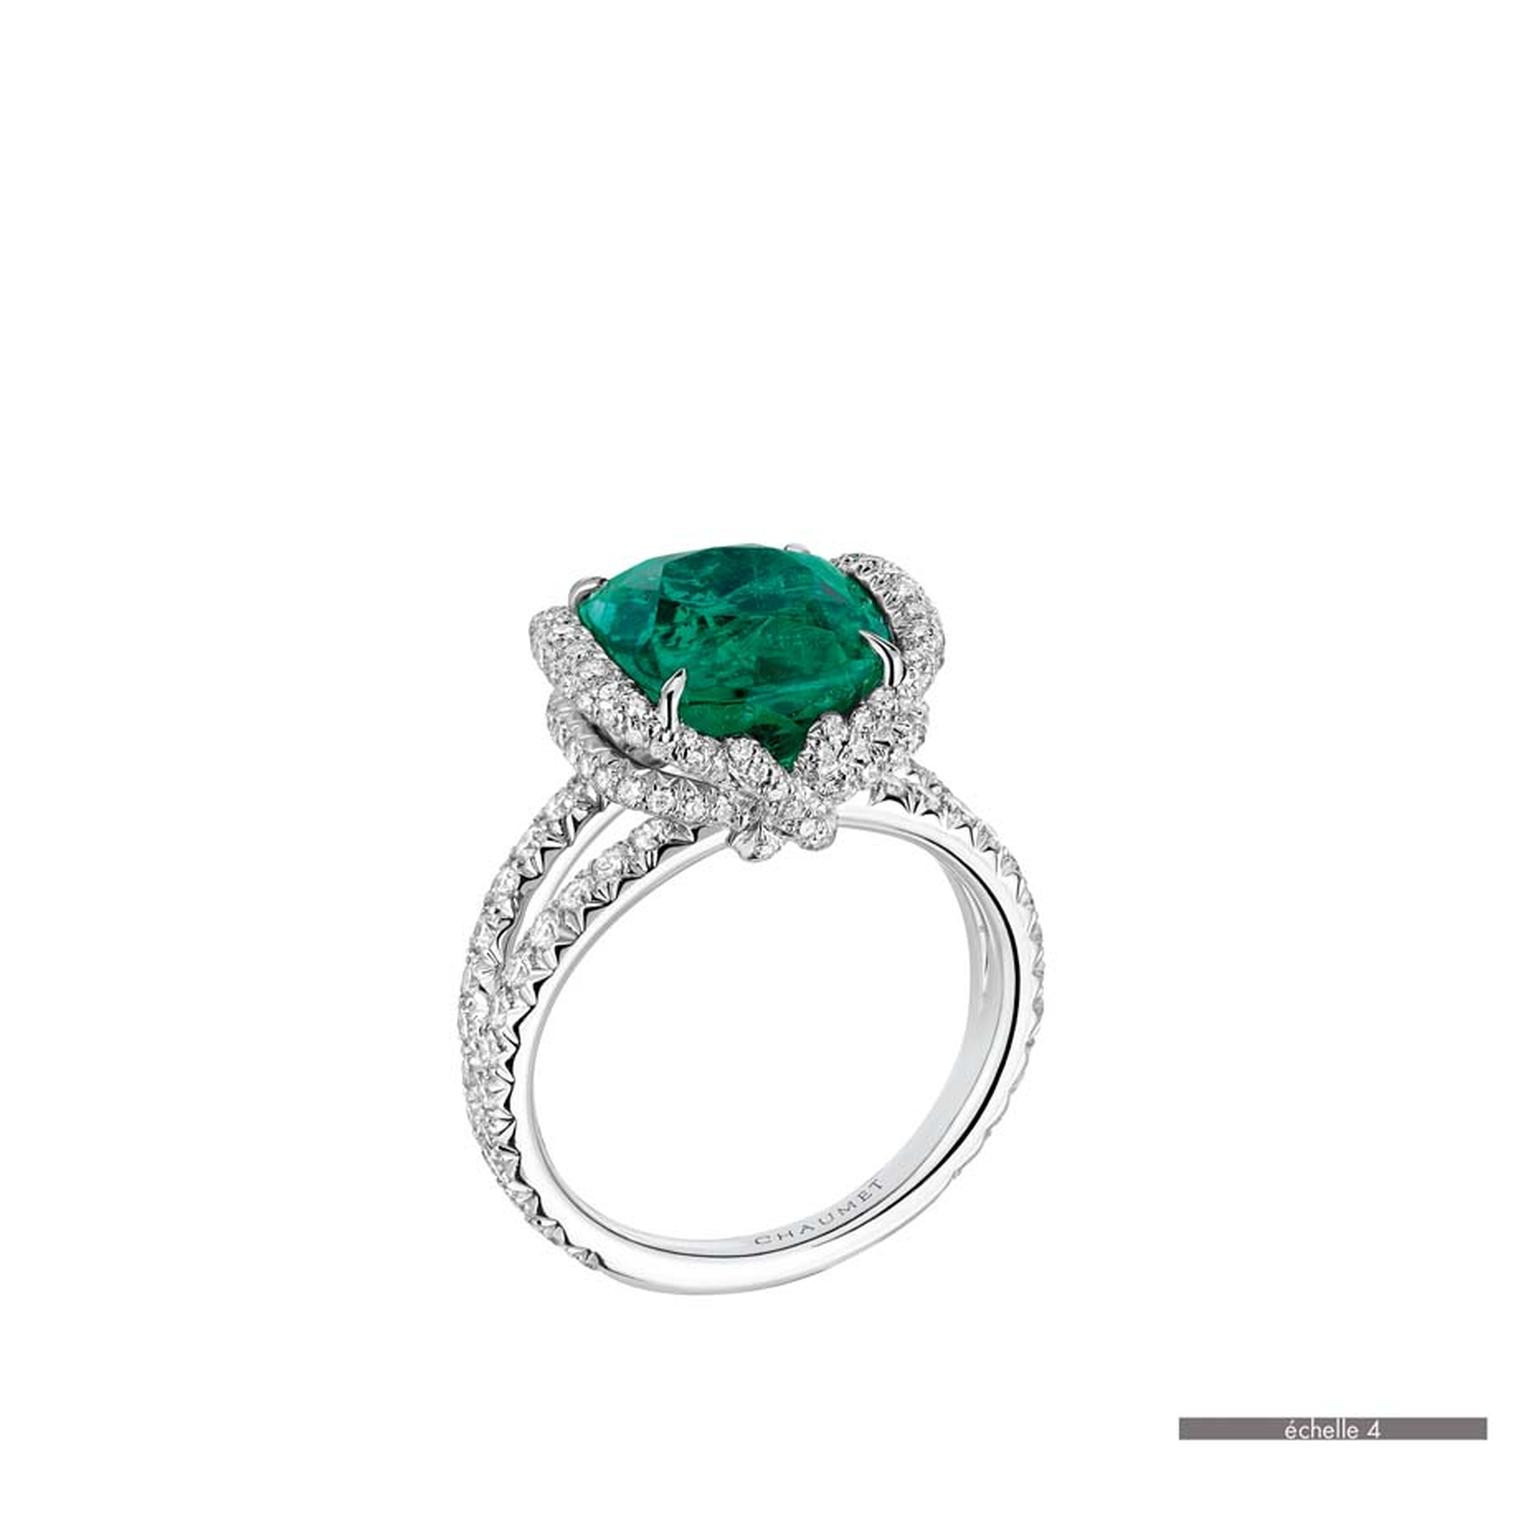 Chaumet Liens ring in white gold featuring 147 brilliant-cut diamonds and a cushion-cut emerald (6.42ct).